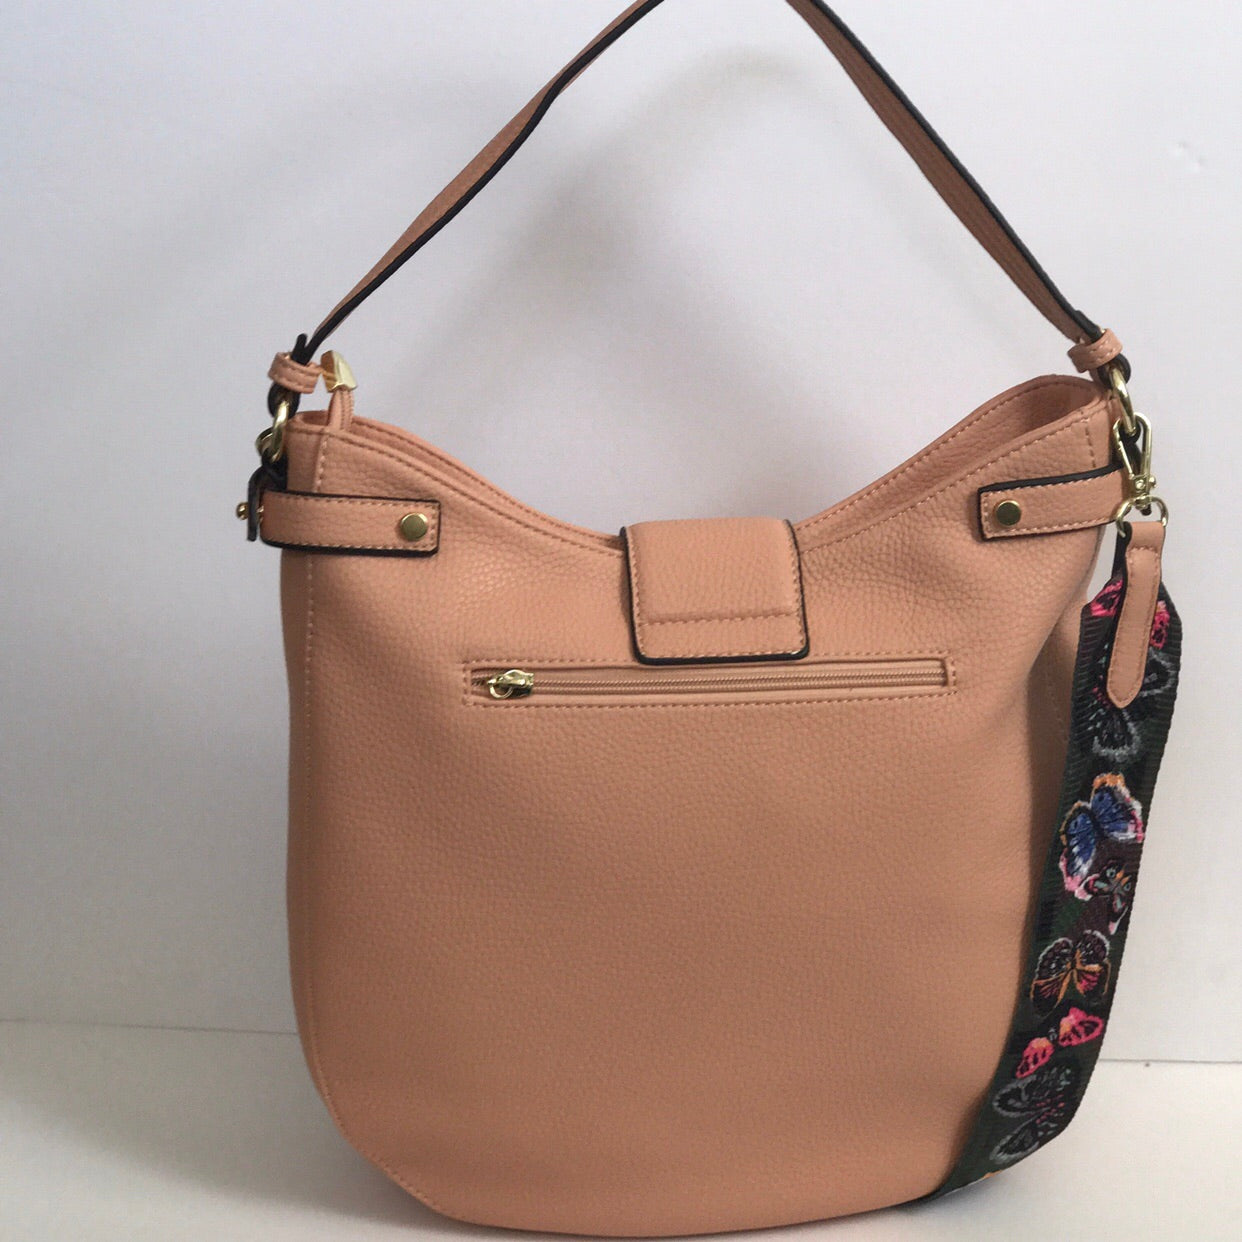 Rose Midtown Butterfly Bucket Bag - Oriana Lamarca LLC